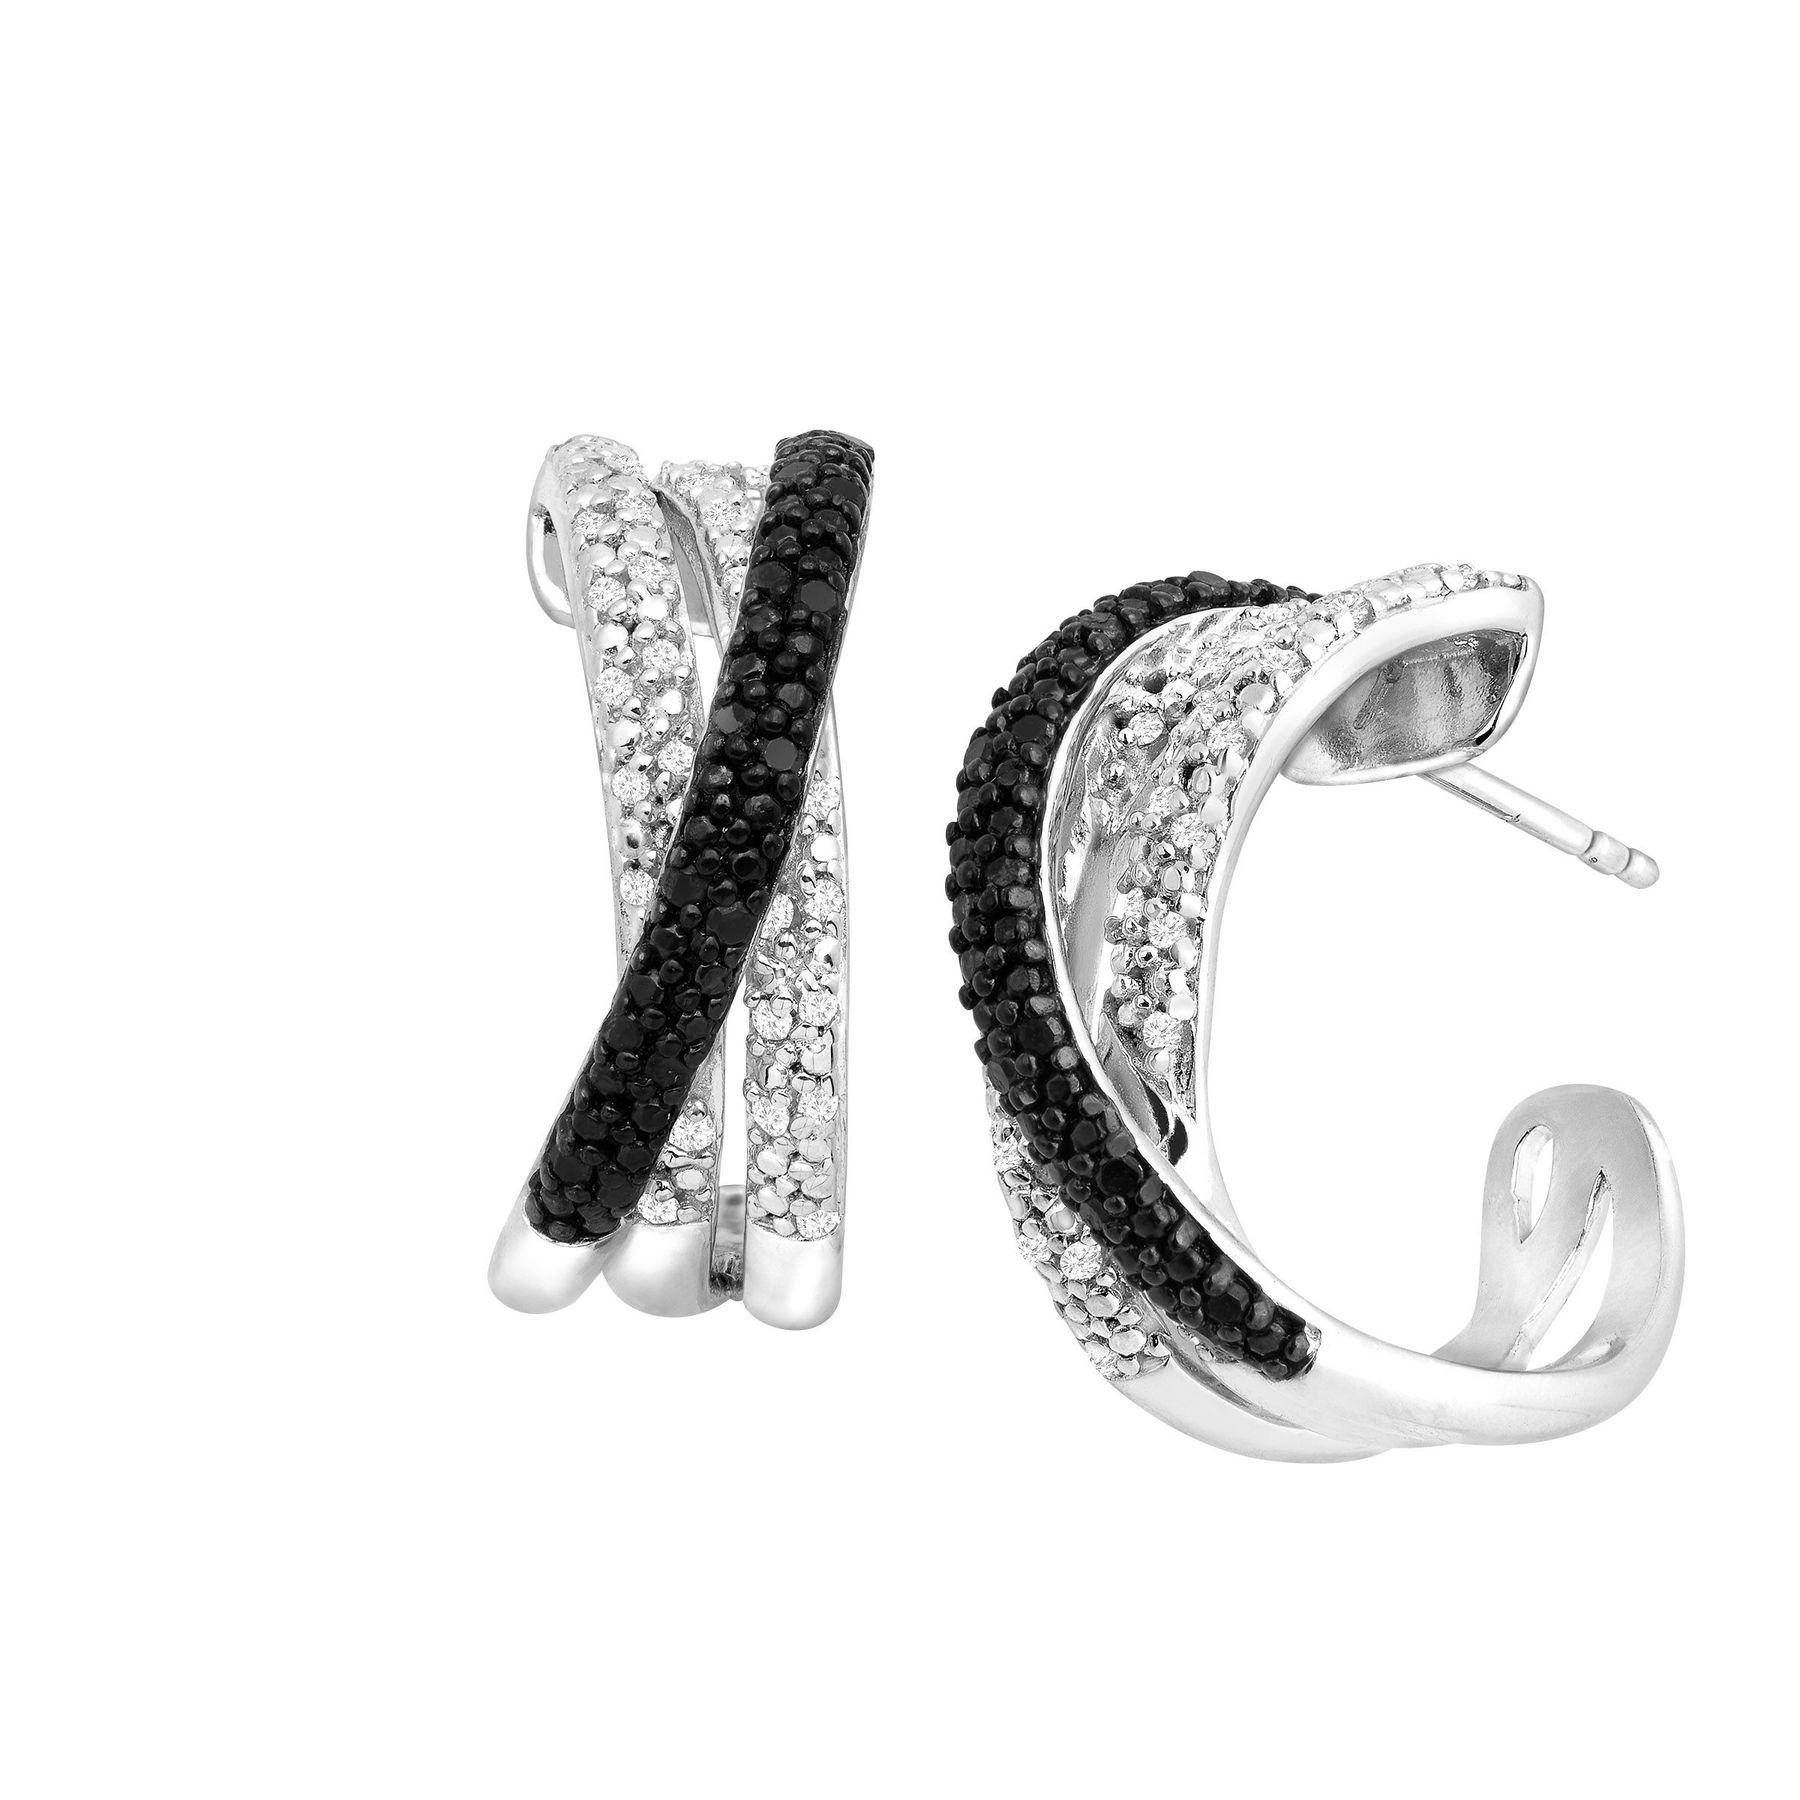 1 3 Carat Diamond Twist Hoop Earrings In Sterling Silver I Want Some